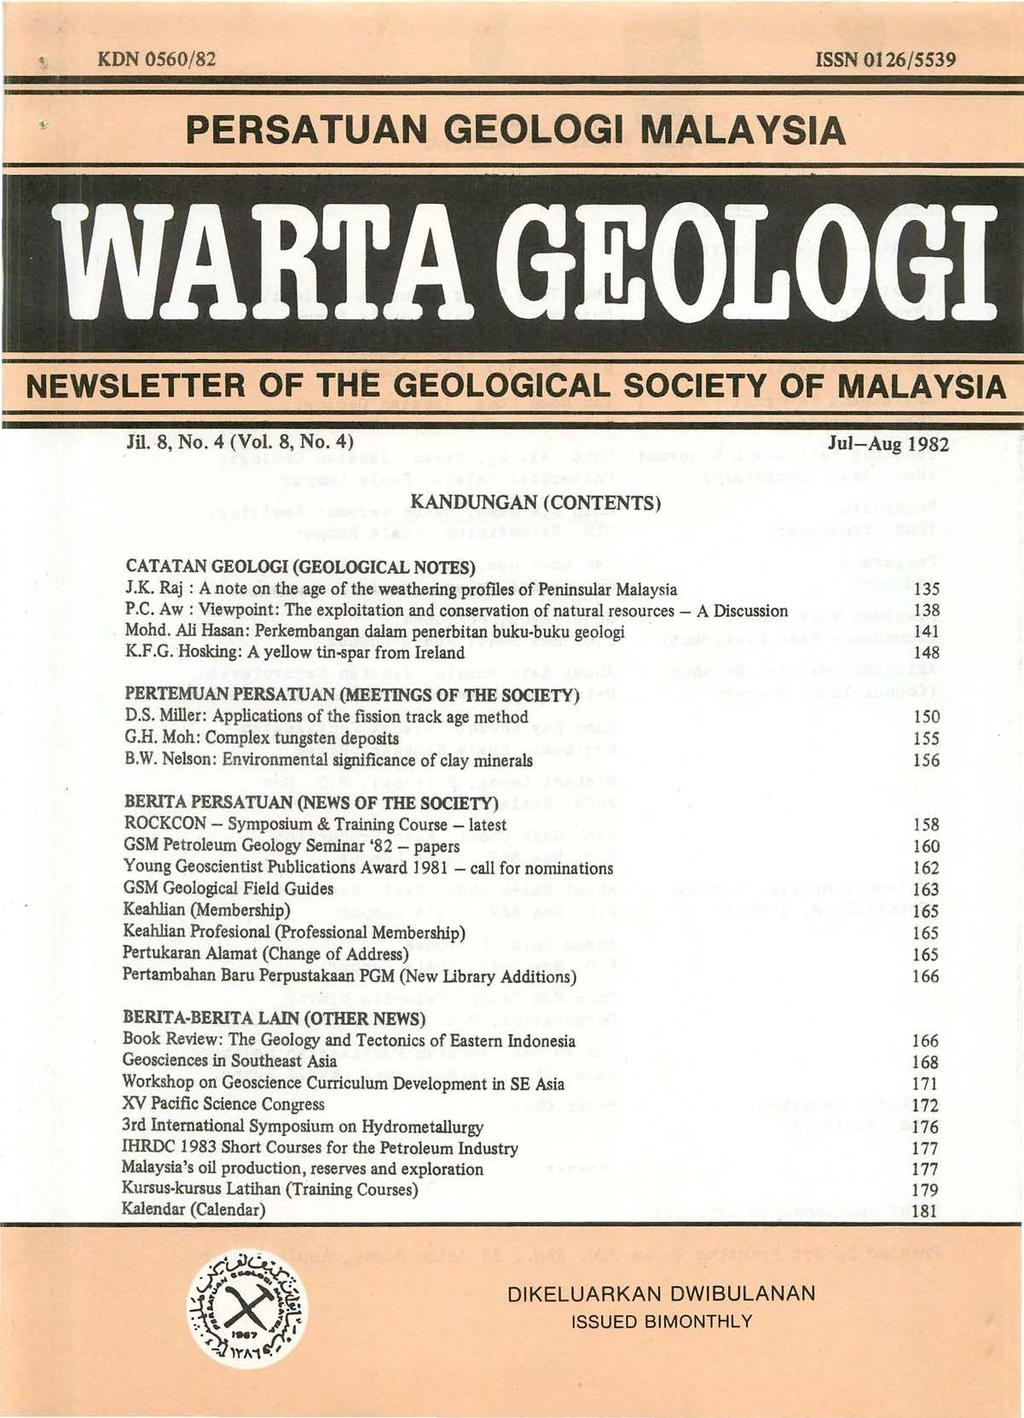 KDN 0560/82 ISSN 0126/5539 PERSATUAN GEOLOGI MALAYSIA NEWSLETTER OF THE GEOLO'GICAL SOCIETY OF MALAYSIA m.8, No.4 (Vol. 8, No.